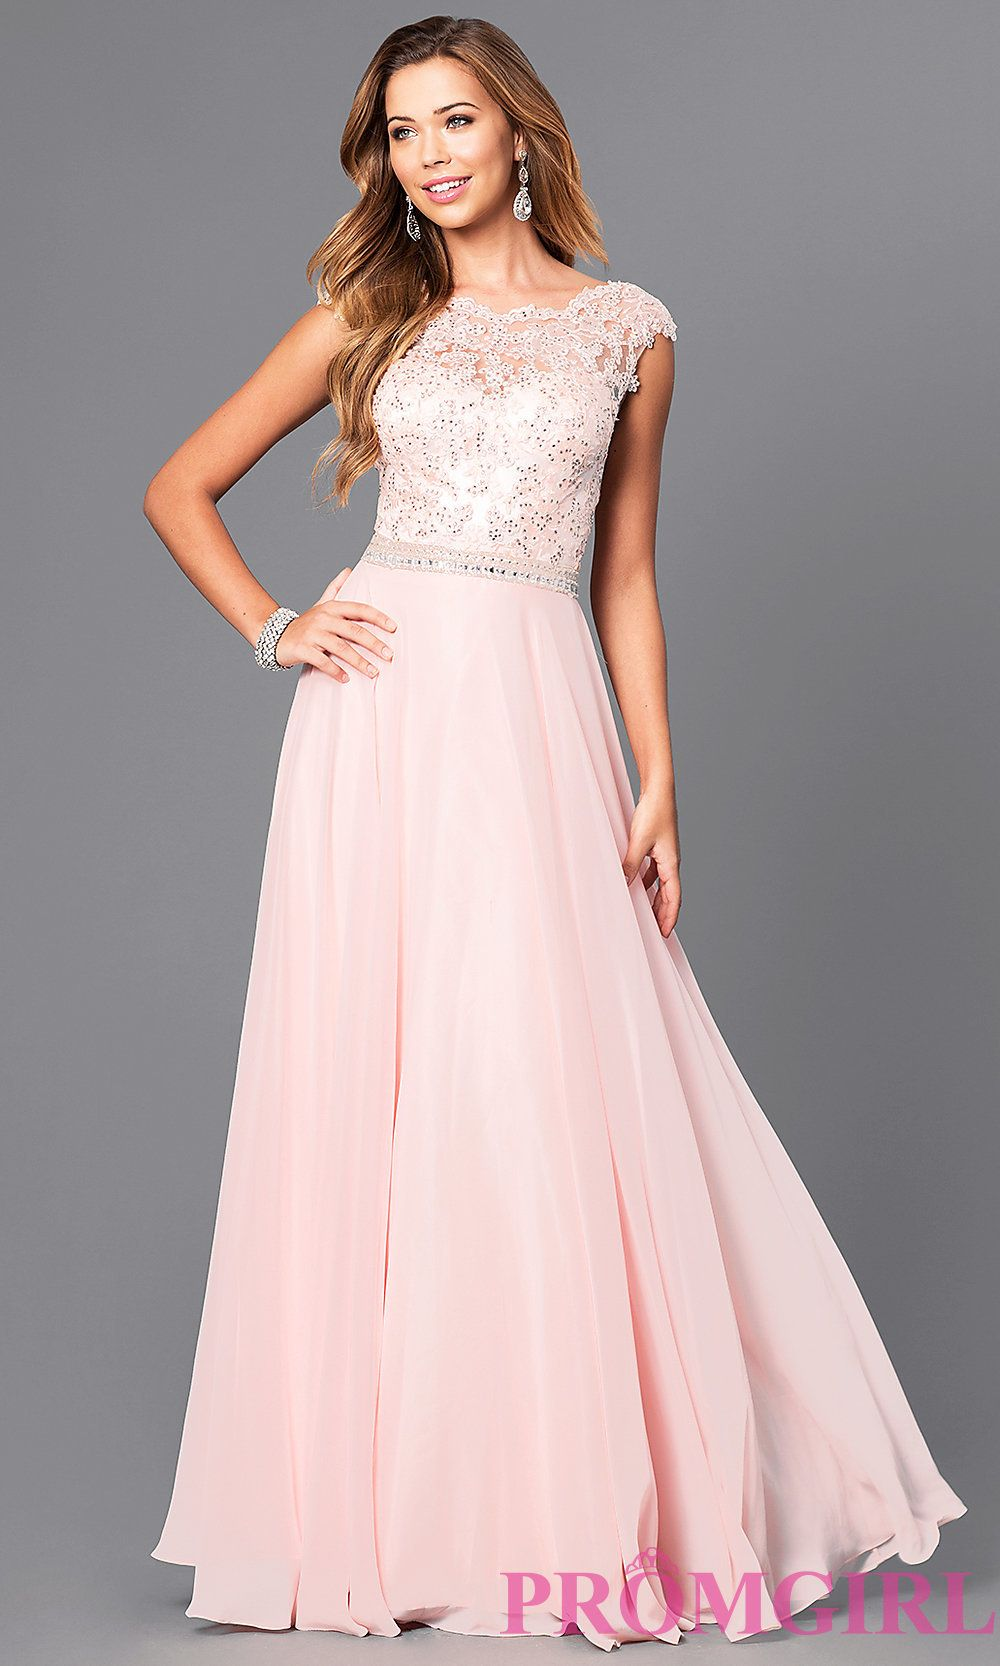 Prom dresses yahoo image search results smh pinterest lace